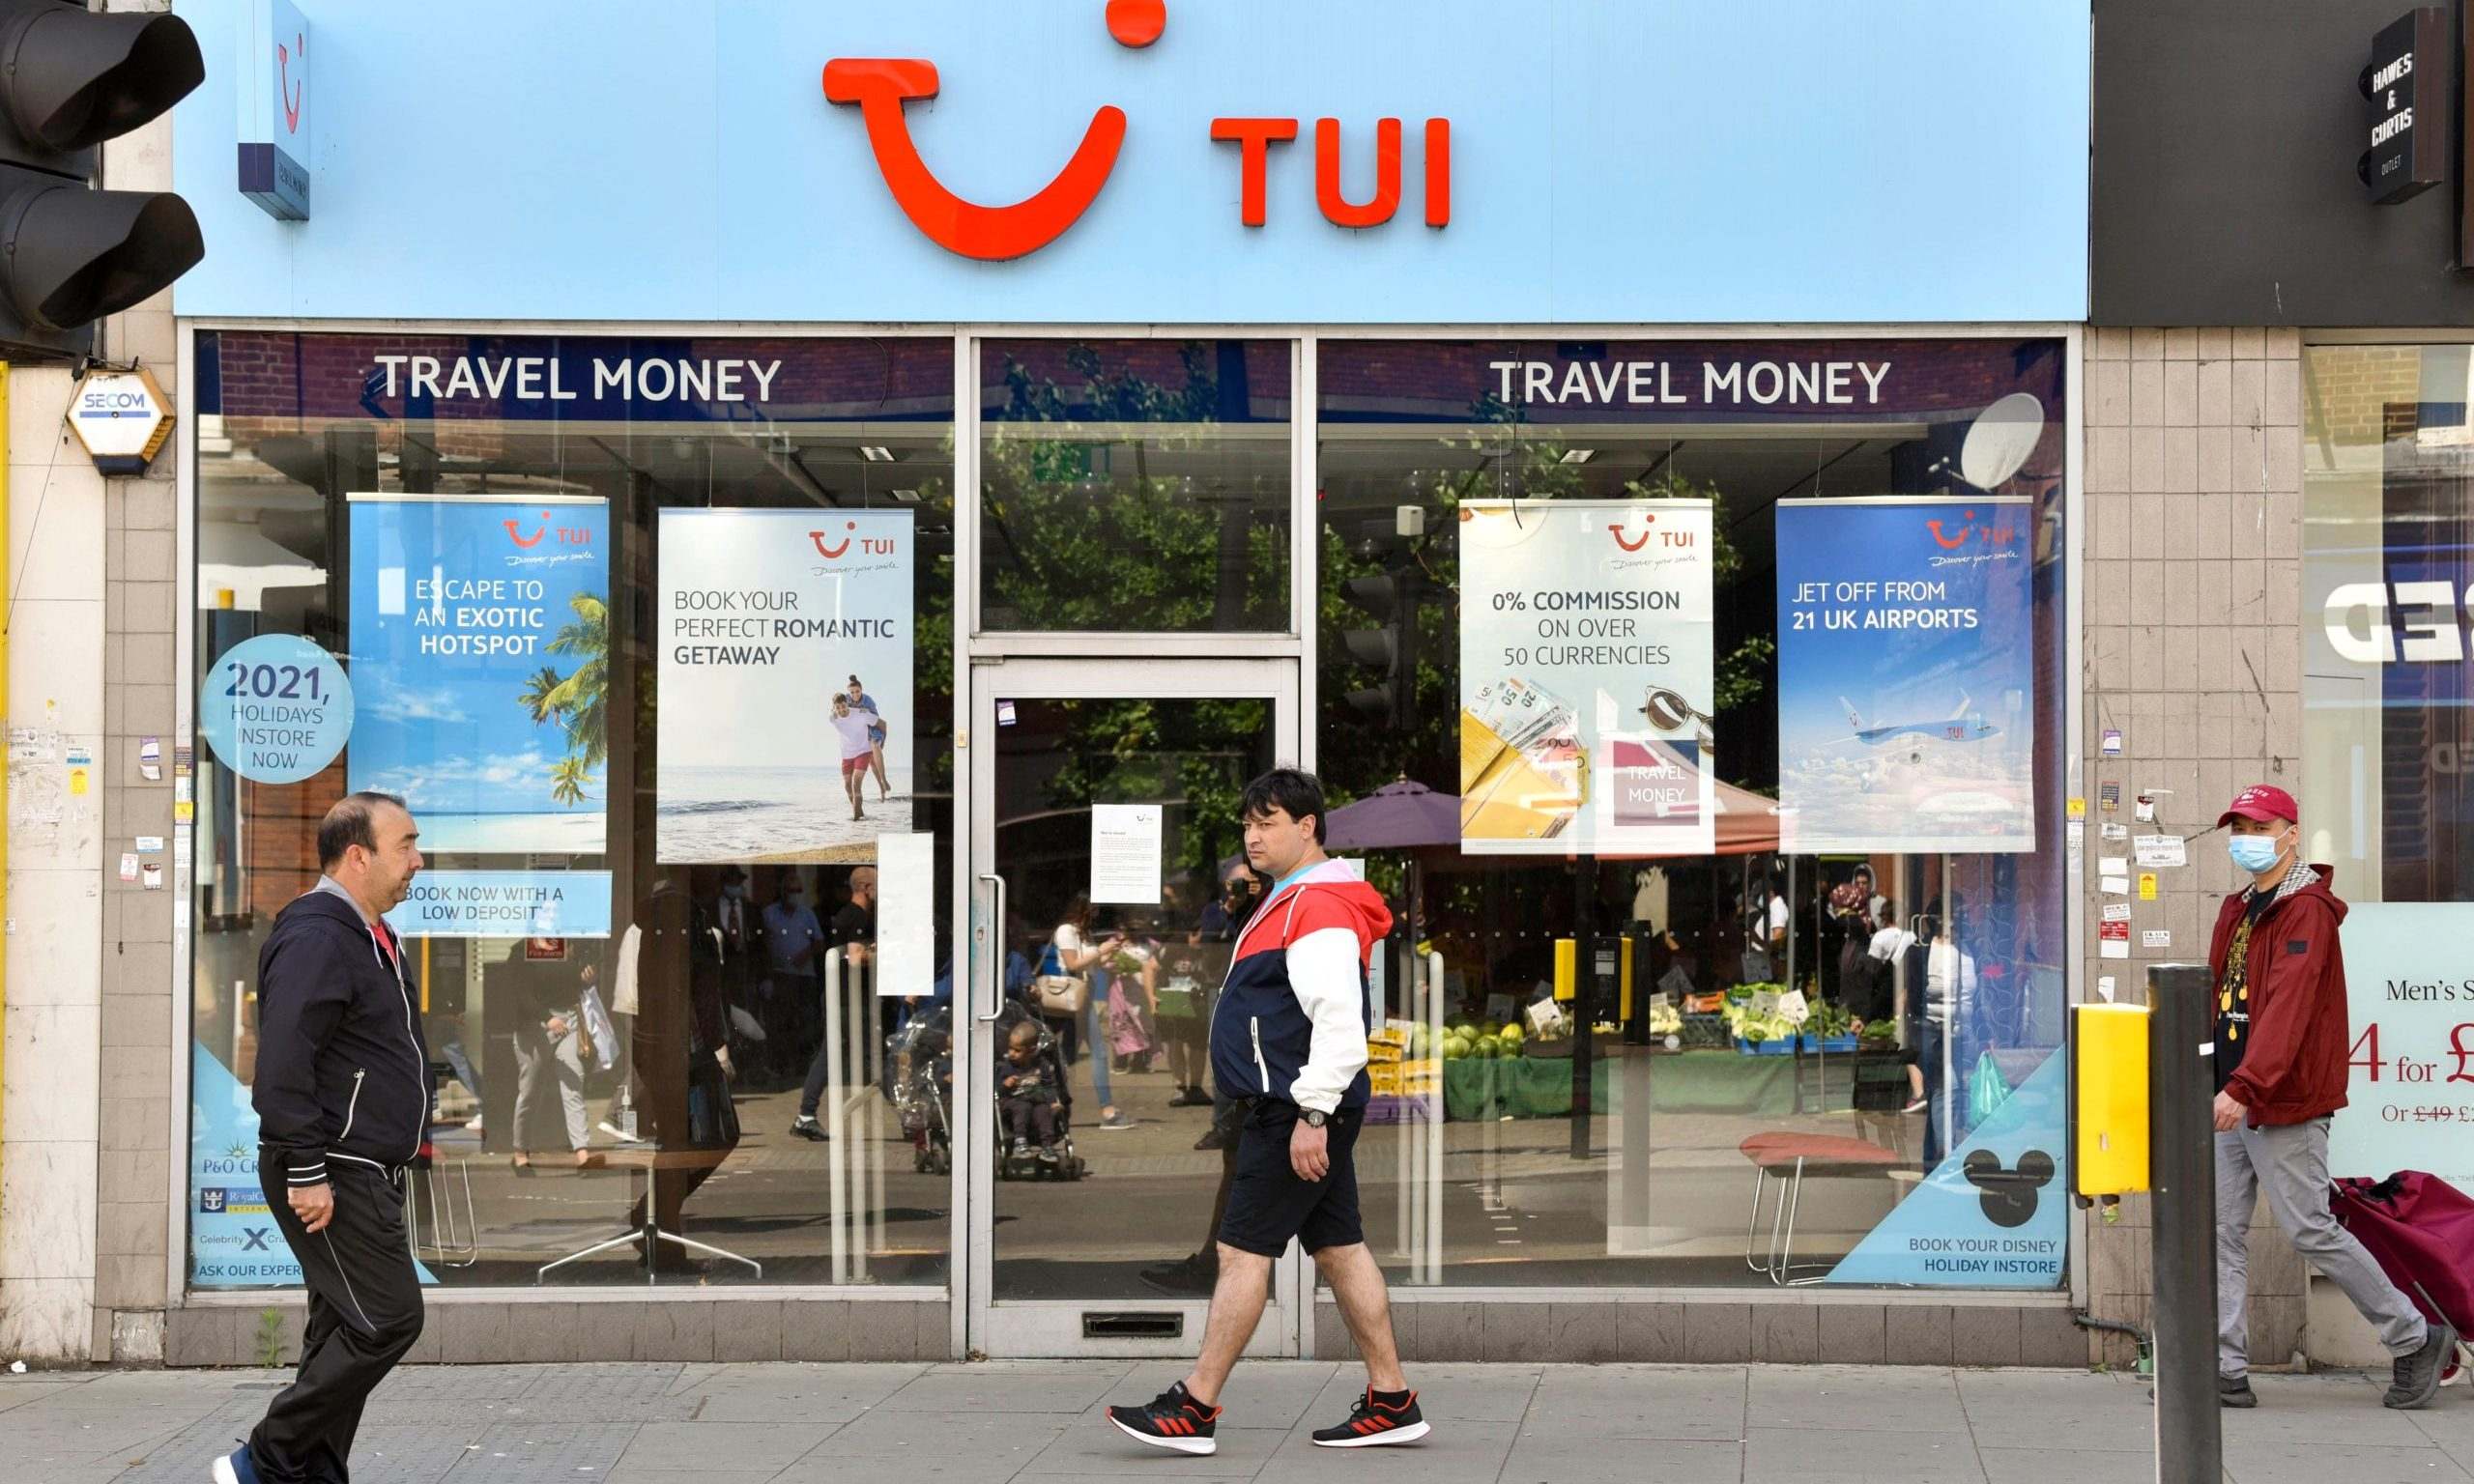 Almost a third of Tui stores will close. Photo by Dave Rushen/SOPA Images/Shutterstock